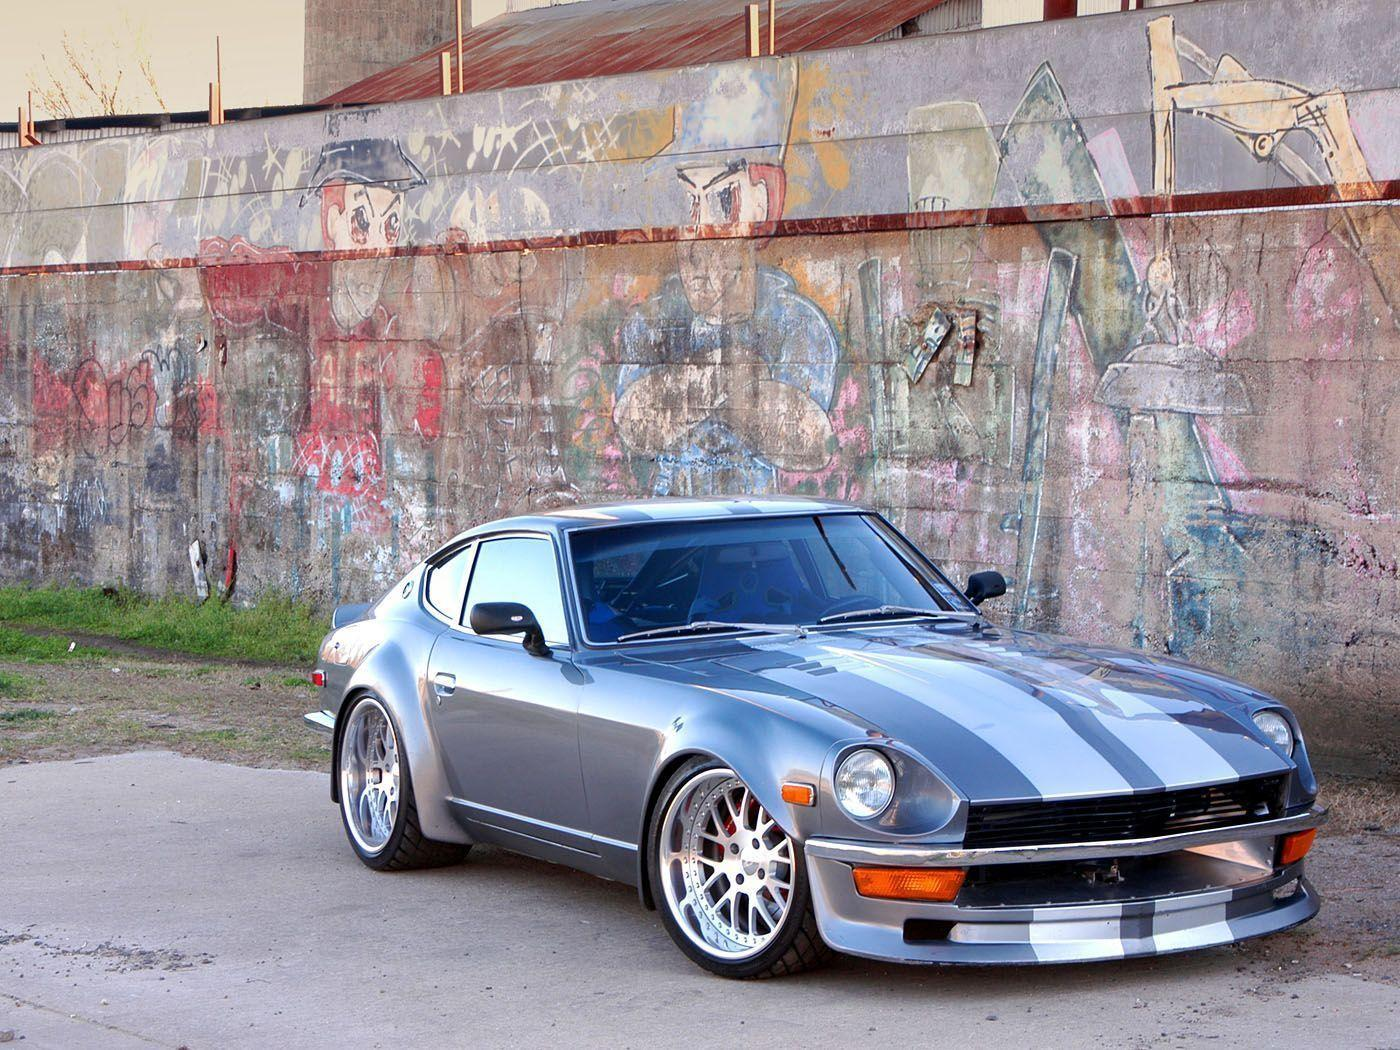 datsun 240z wallpapers wallpaper cave. Black Bedroom Furniture Sets. Home Design Ideas